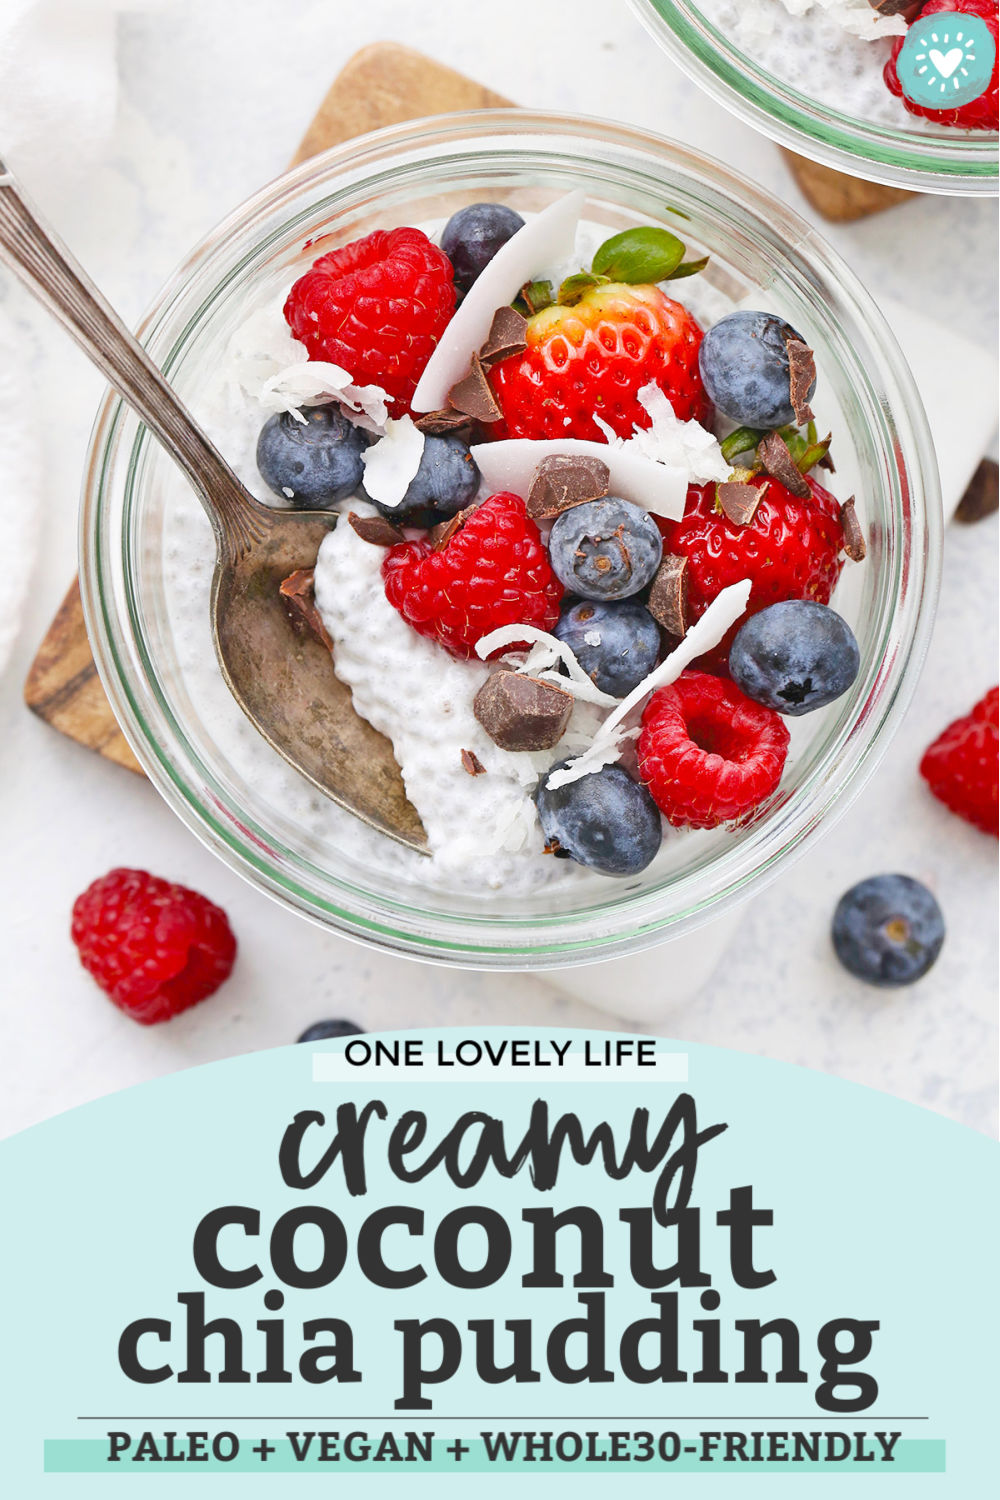 Coconut Chia Pudding from One Lovely Life